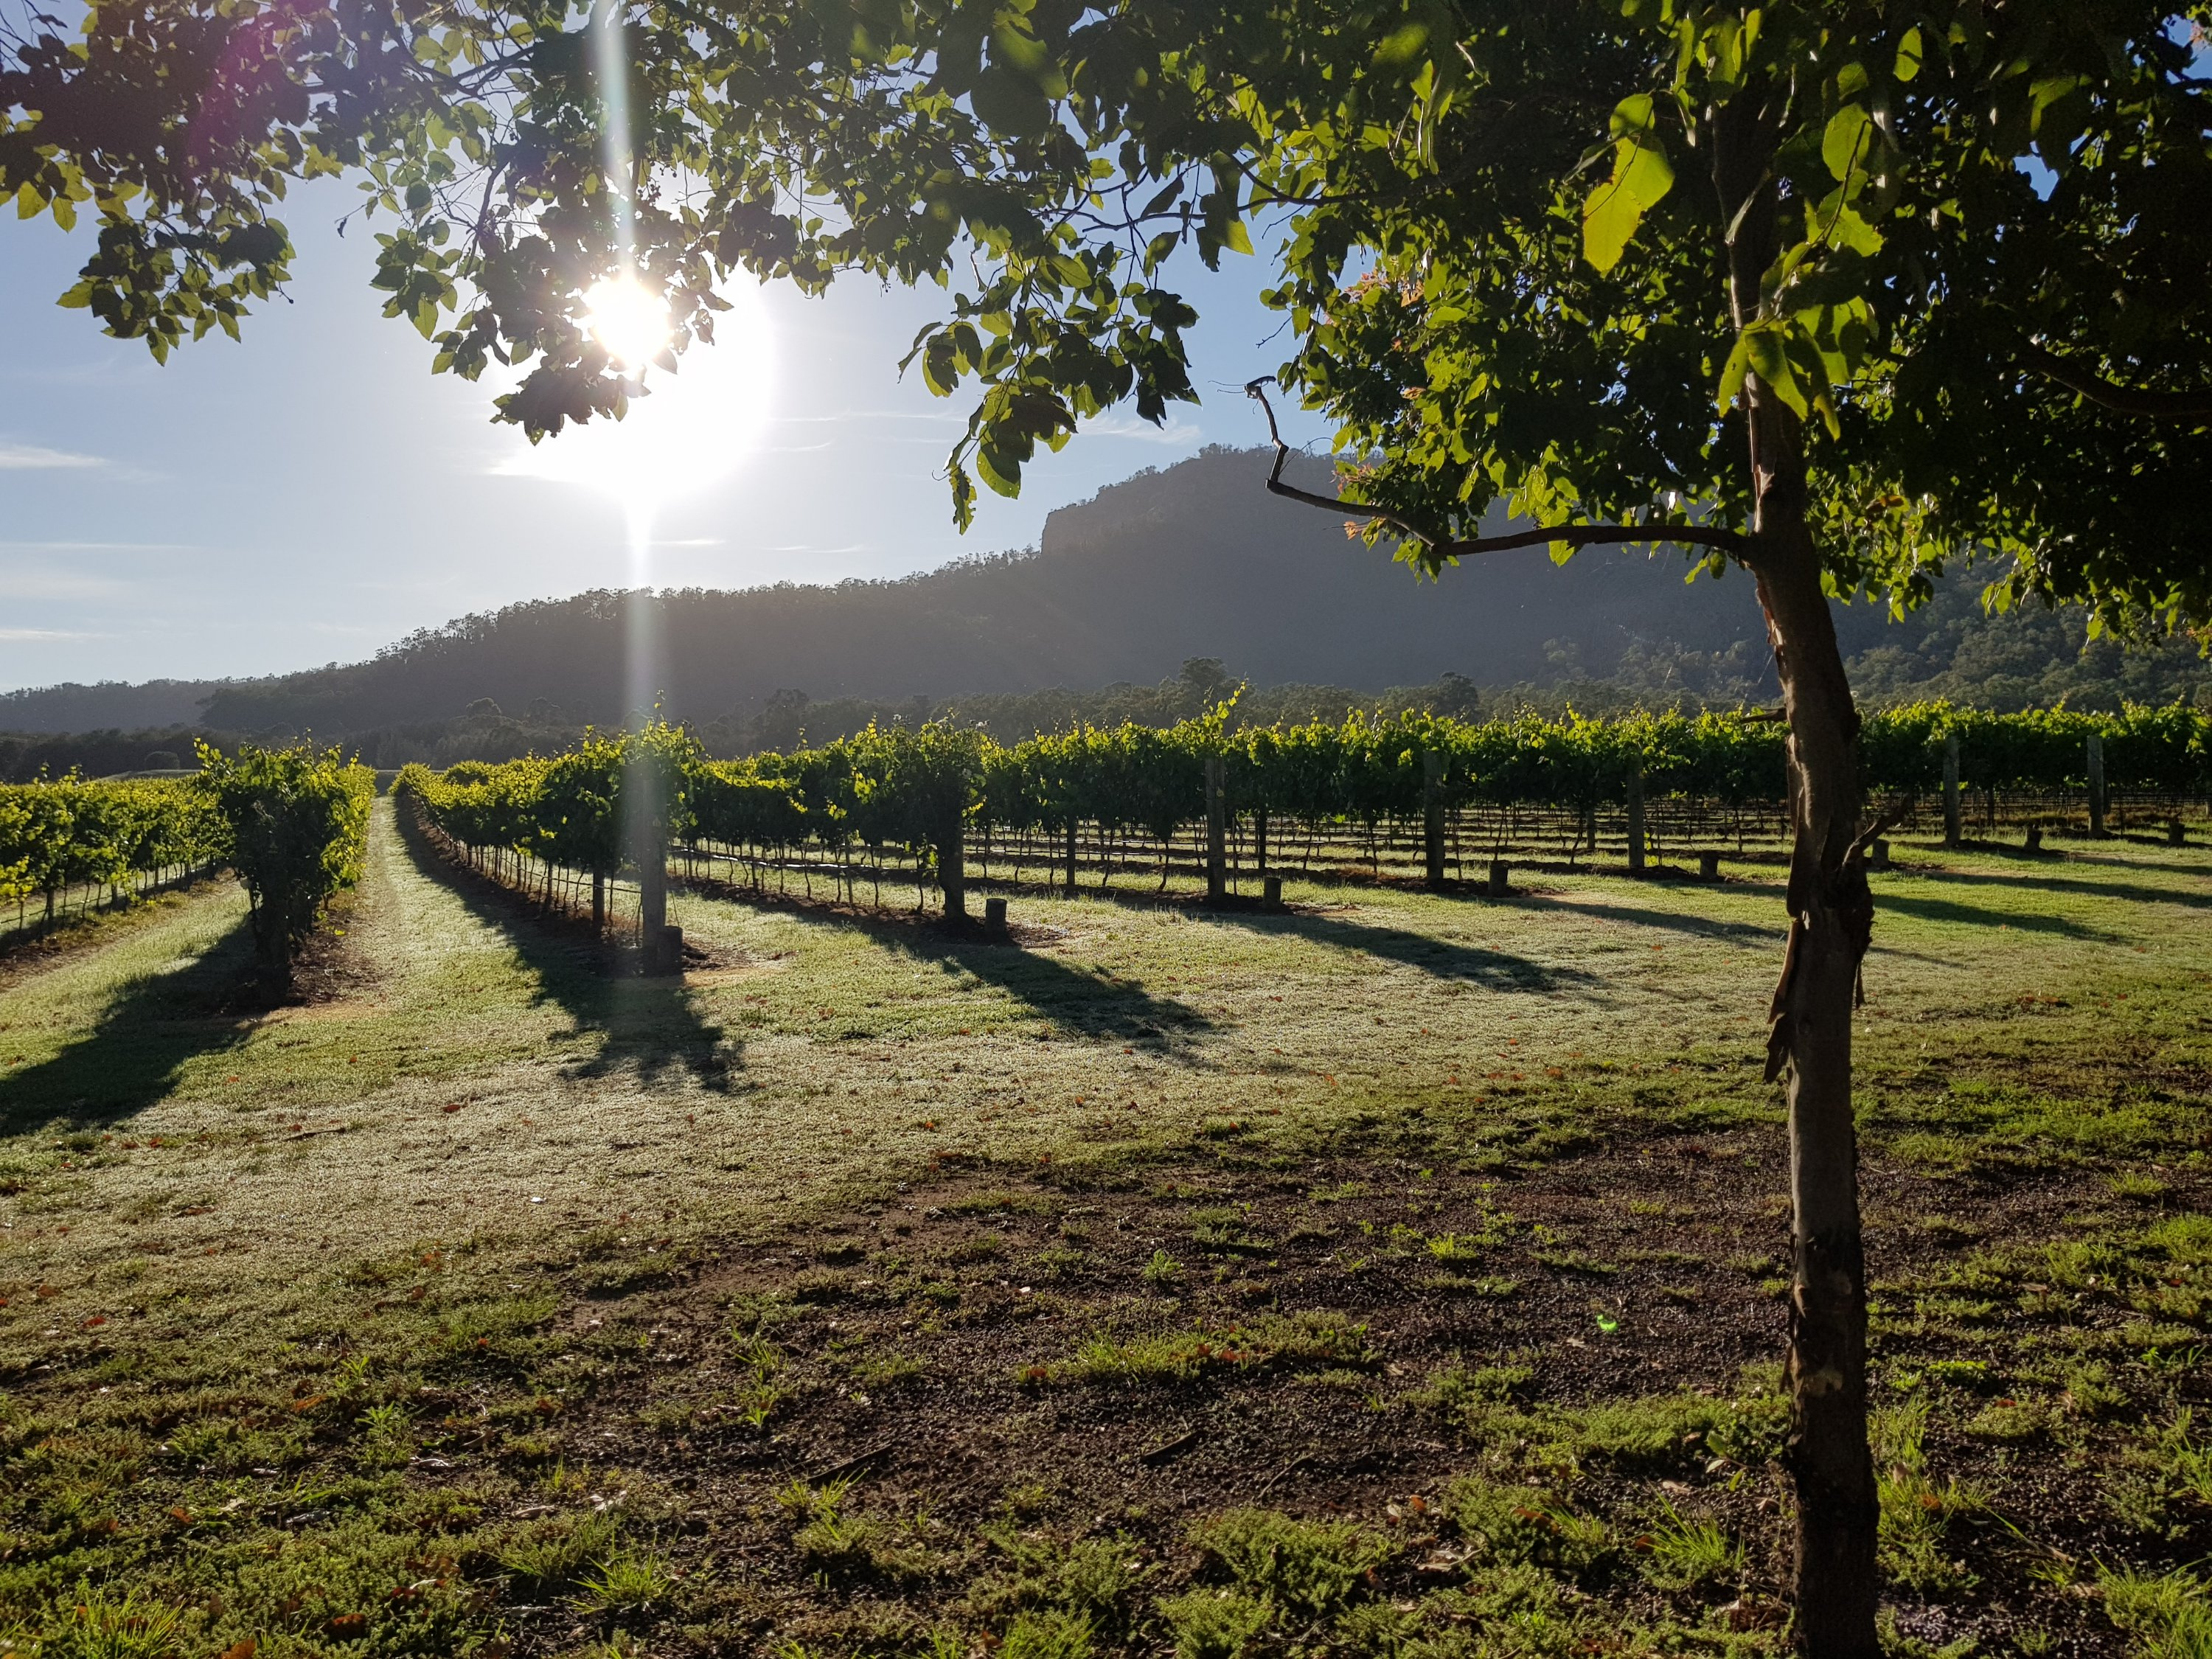 Vineyard in the early morning